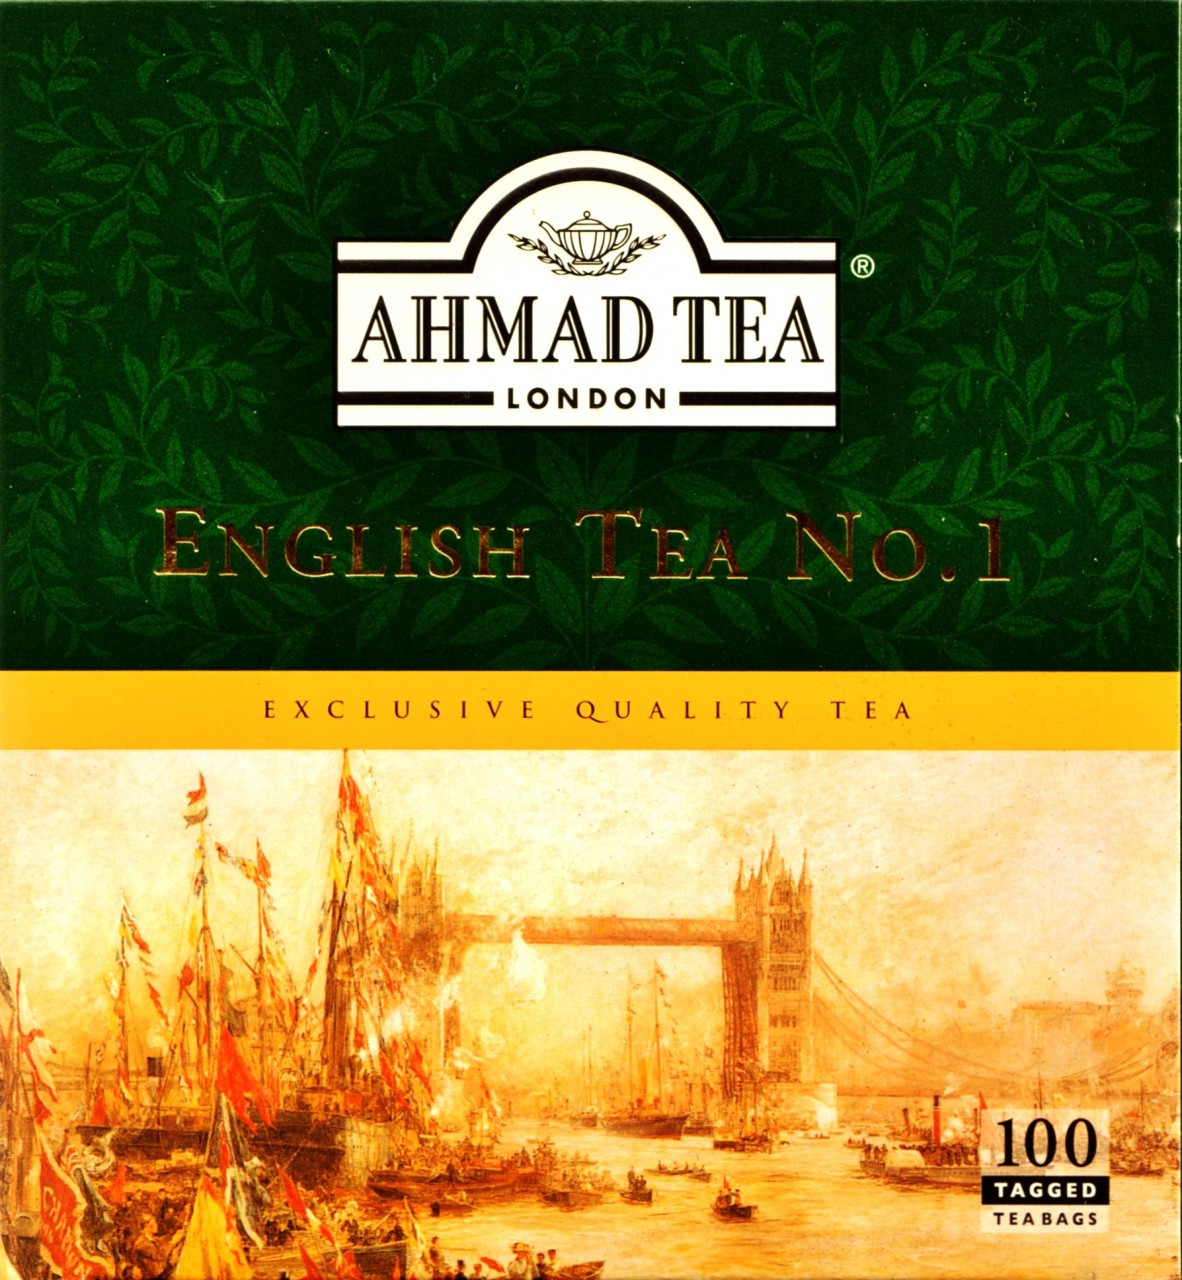 AHMADTEA ENGLISH TEA NO. 1 100 TEA BAGS (200G)